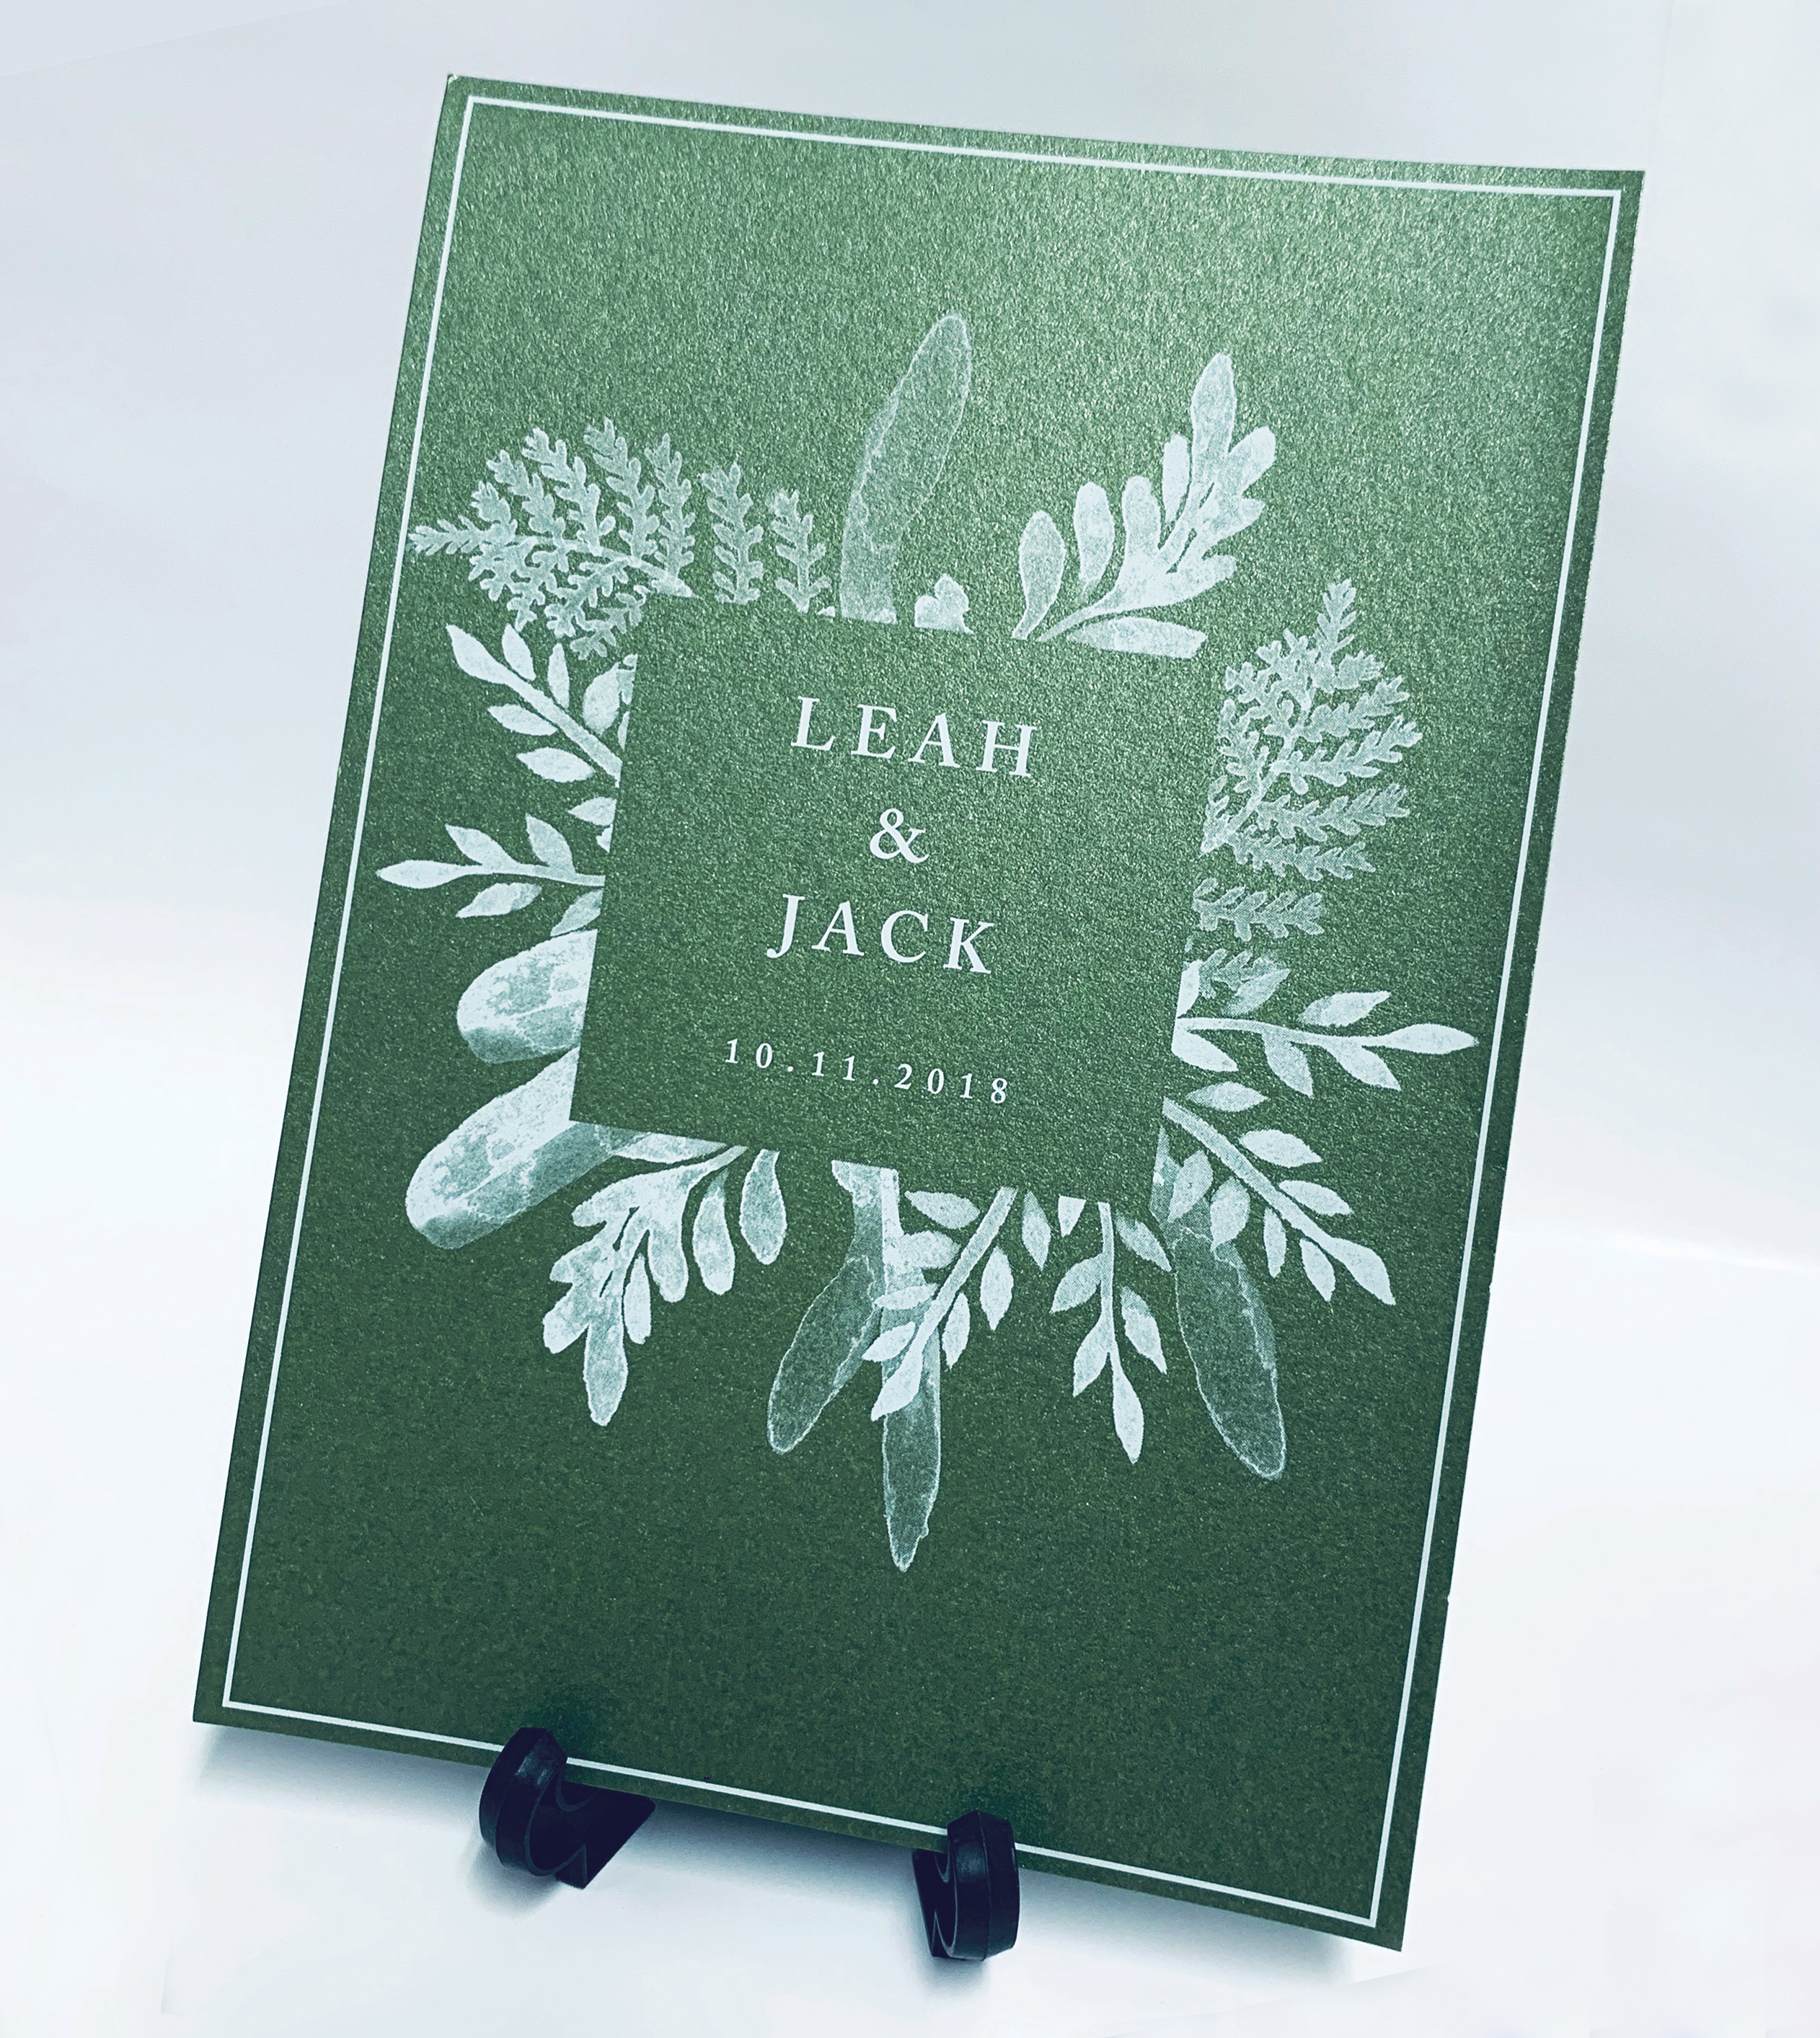 Leah & Jack - White Ink Print